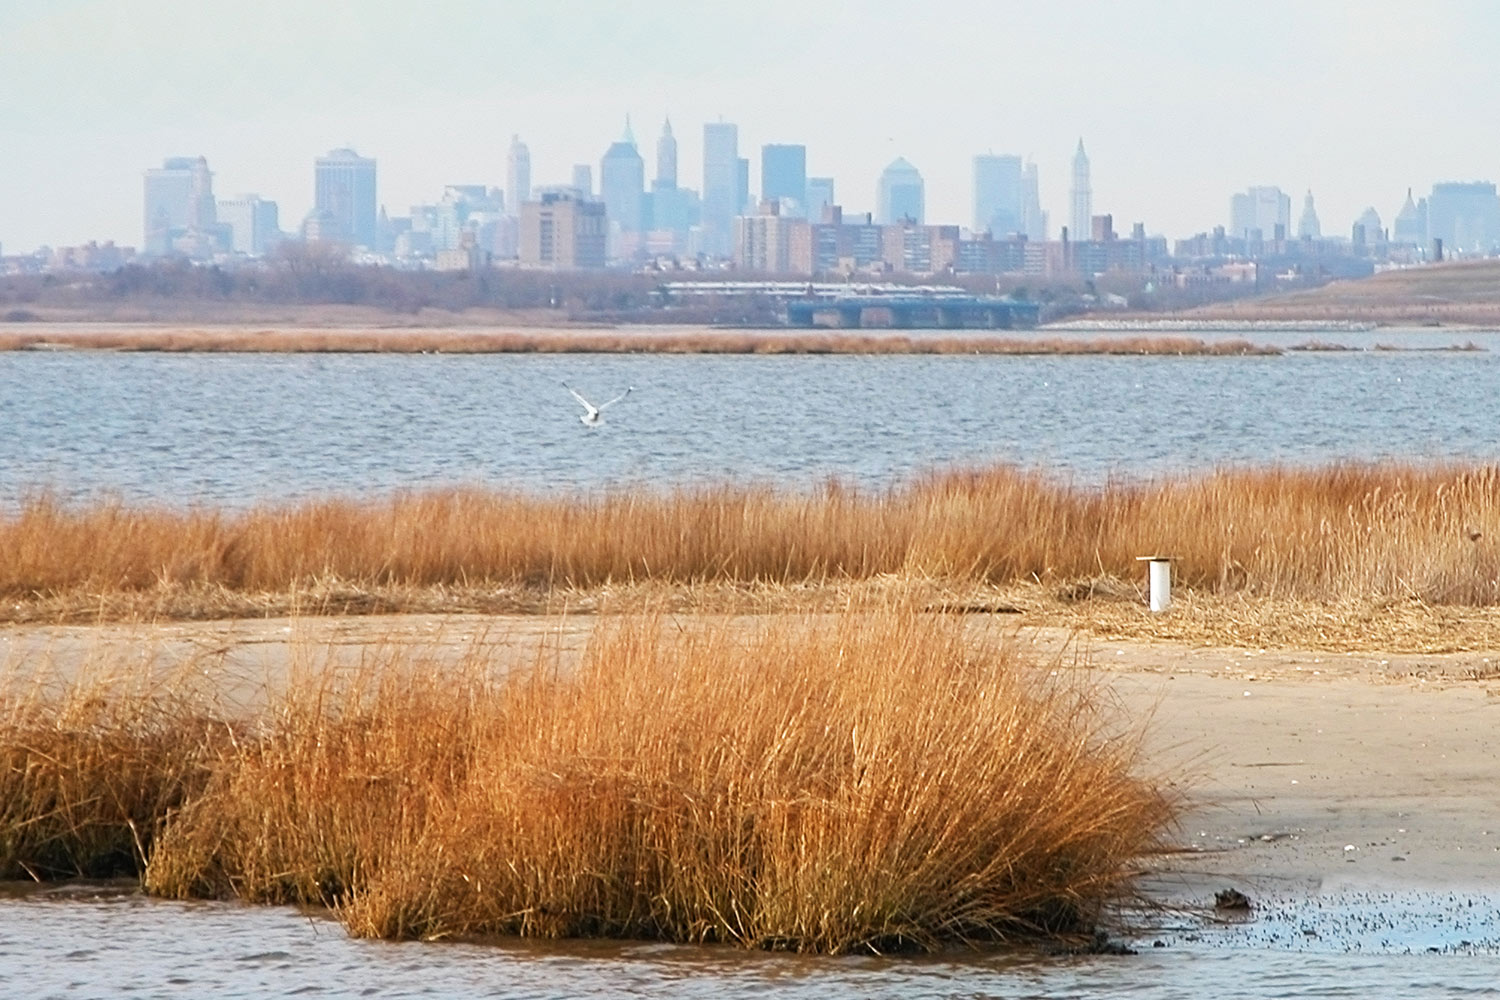 A bird coming in to land on a sandy island in the Jamaica Bay estuary, amongst long grass